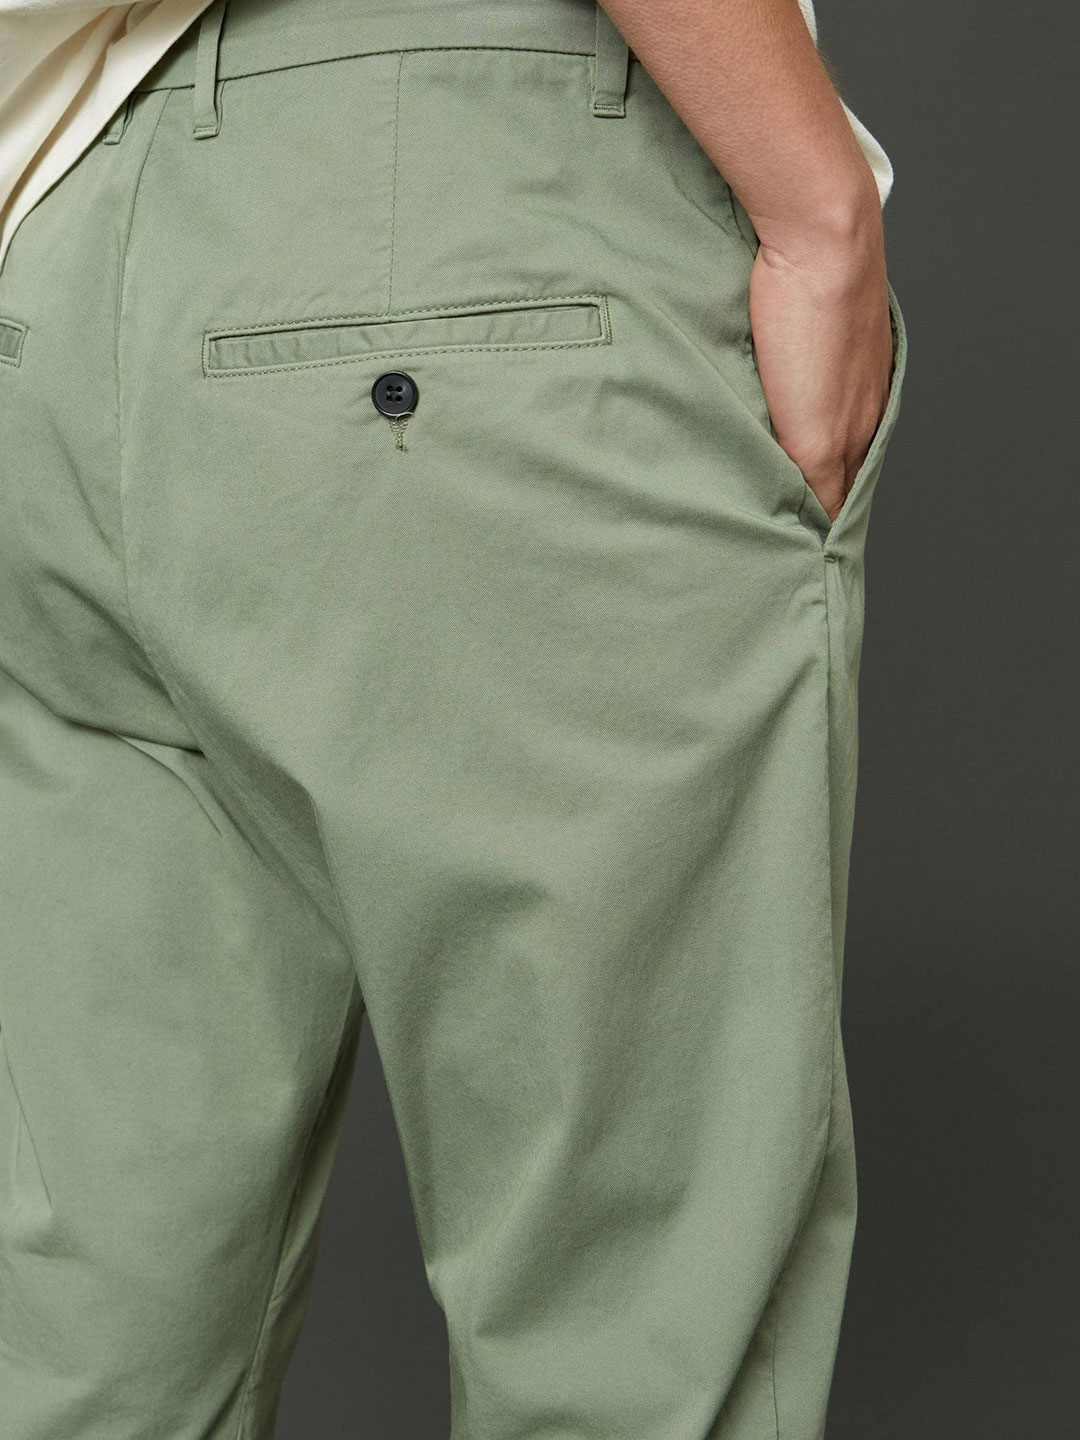 A1056-News-Edit-Trouser-Hope-Sthlm-Faded-Green-Back-Close-Up